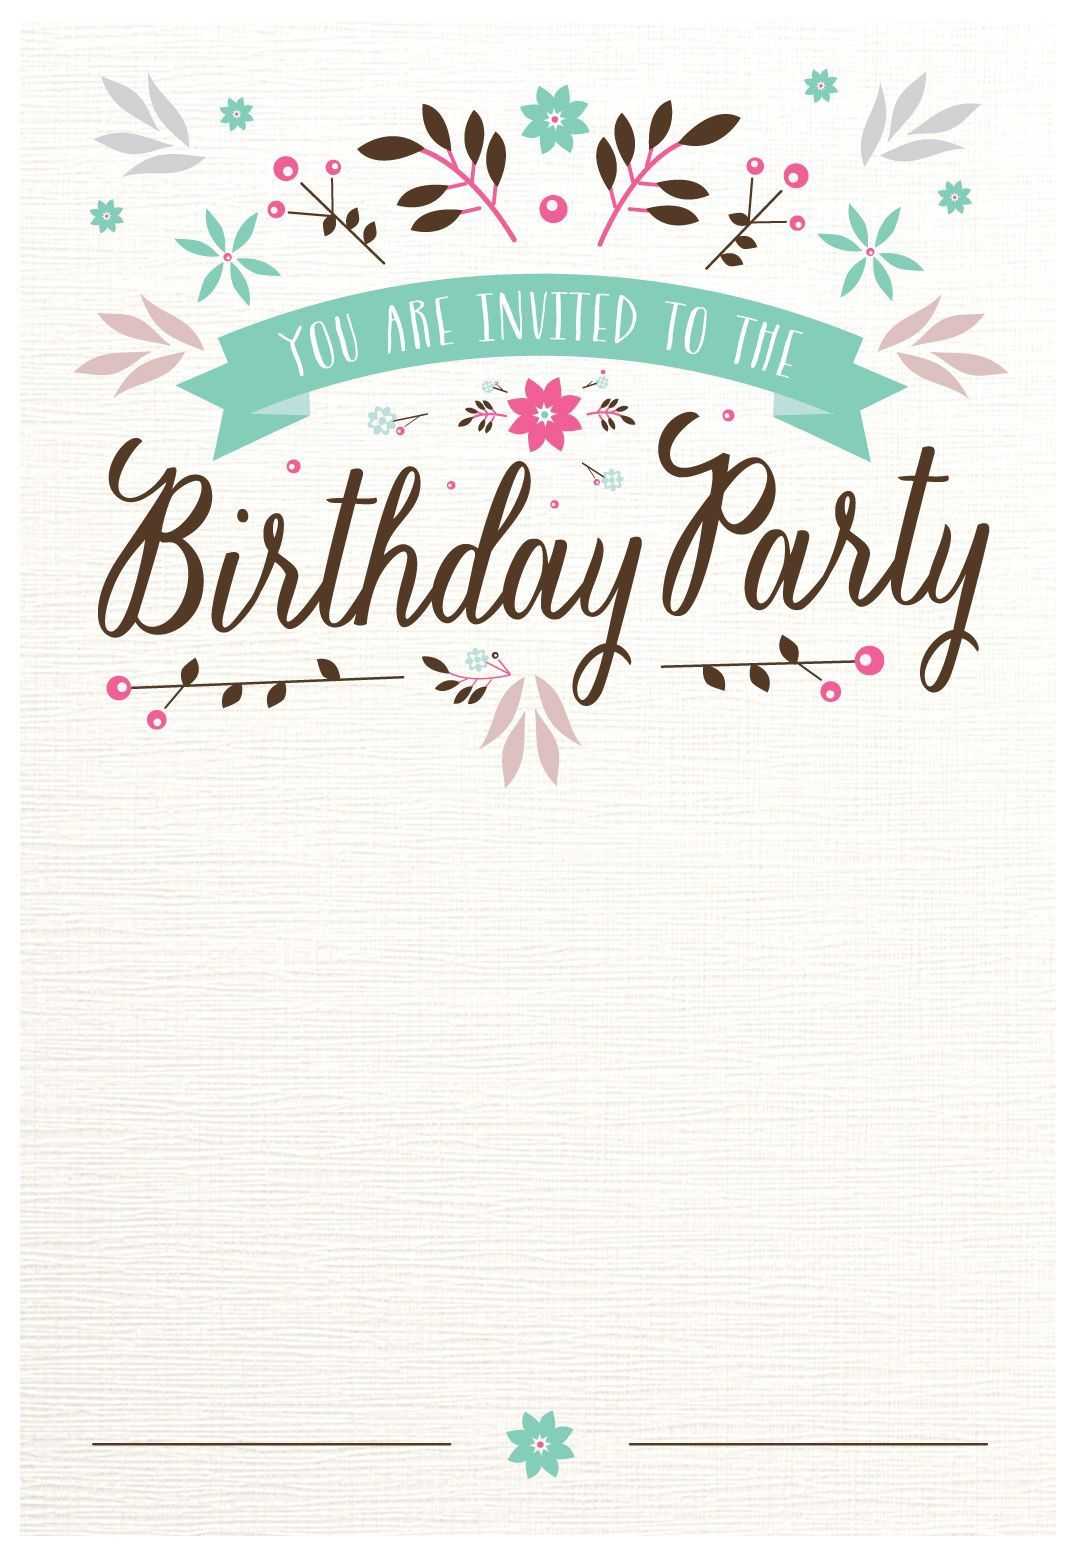 002 Surprising Free Birthday Card Invitation Template Printable Picture Full